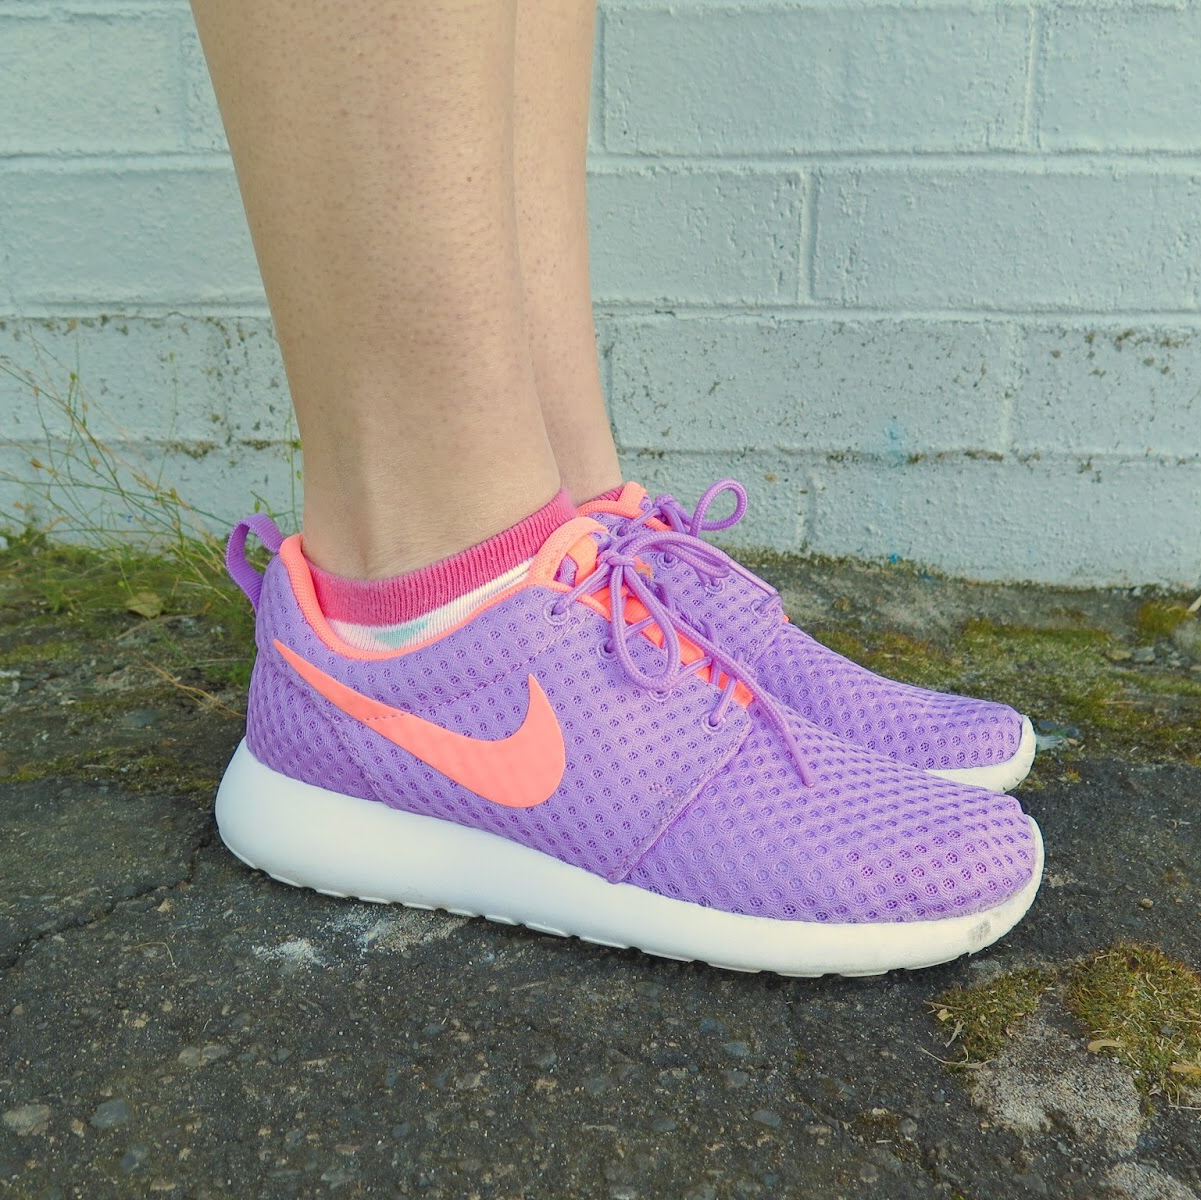 info for 5b62f 19287 Purple and orange Nike roshes.- 0